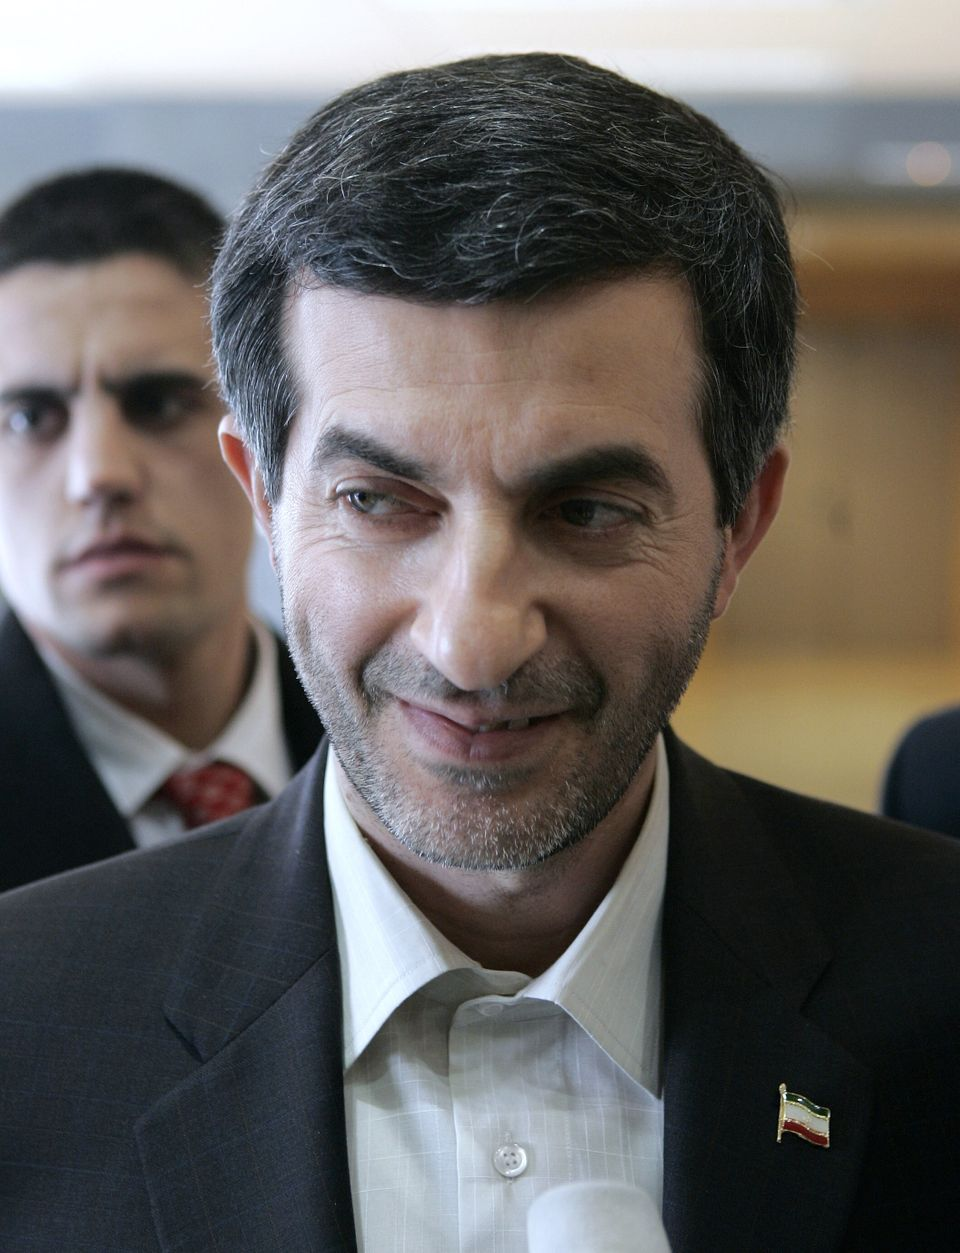 The Iranian vice-president Rahim Mashaei talks to reporters after leaving a private meeting with Spain's foreign minister Mig